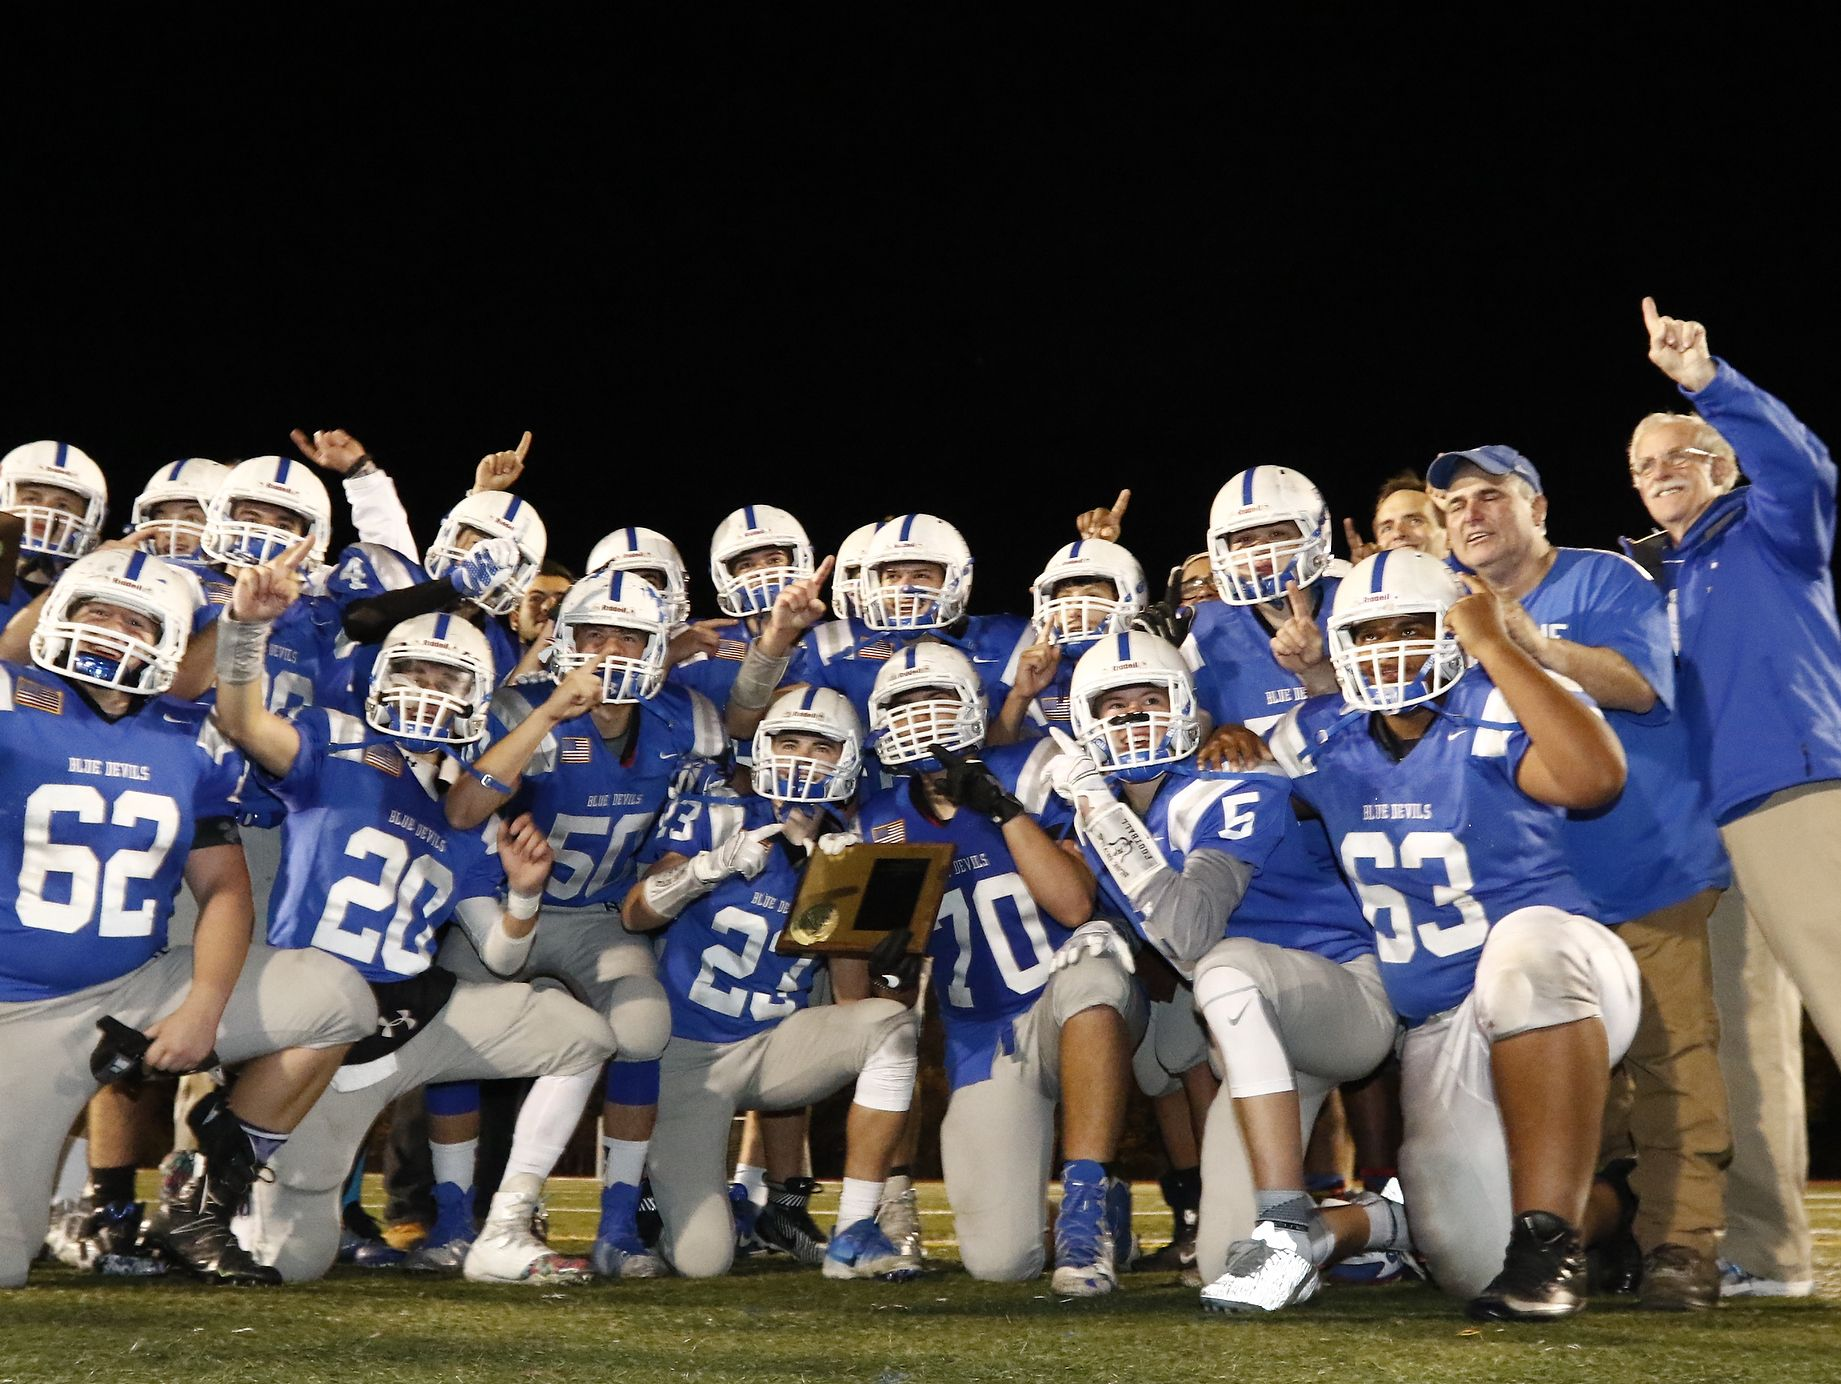 Haldane celebrates their 26-6 win over Tuckahoe in the Section 1 Class D championship football game at Mahopac High School on Friday, November 4, 2016.